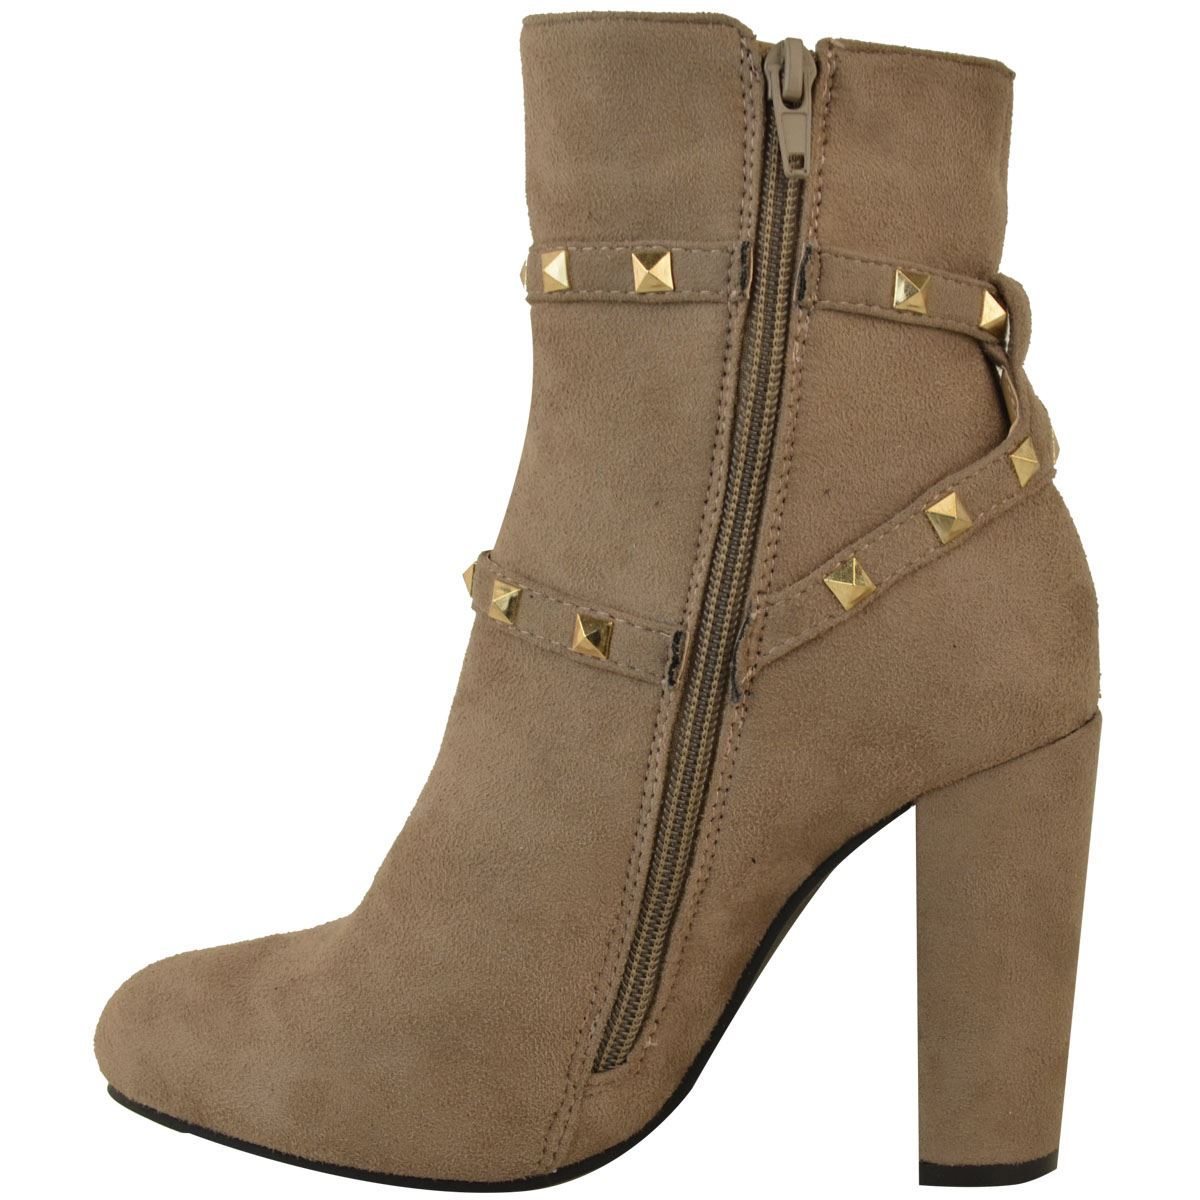 thumbnail 31 - WOMENS-LADIES-LOW-BLOCK-HEEL-CHELSEA-ANKLE-BOOTS-CUT-OUT-LACE-UP-SHOES-NEW-SIZE